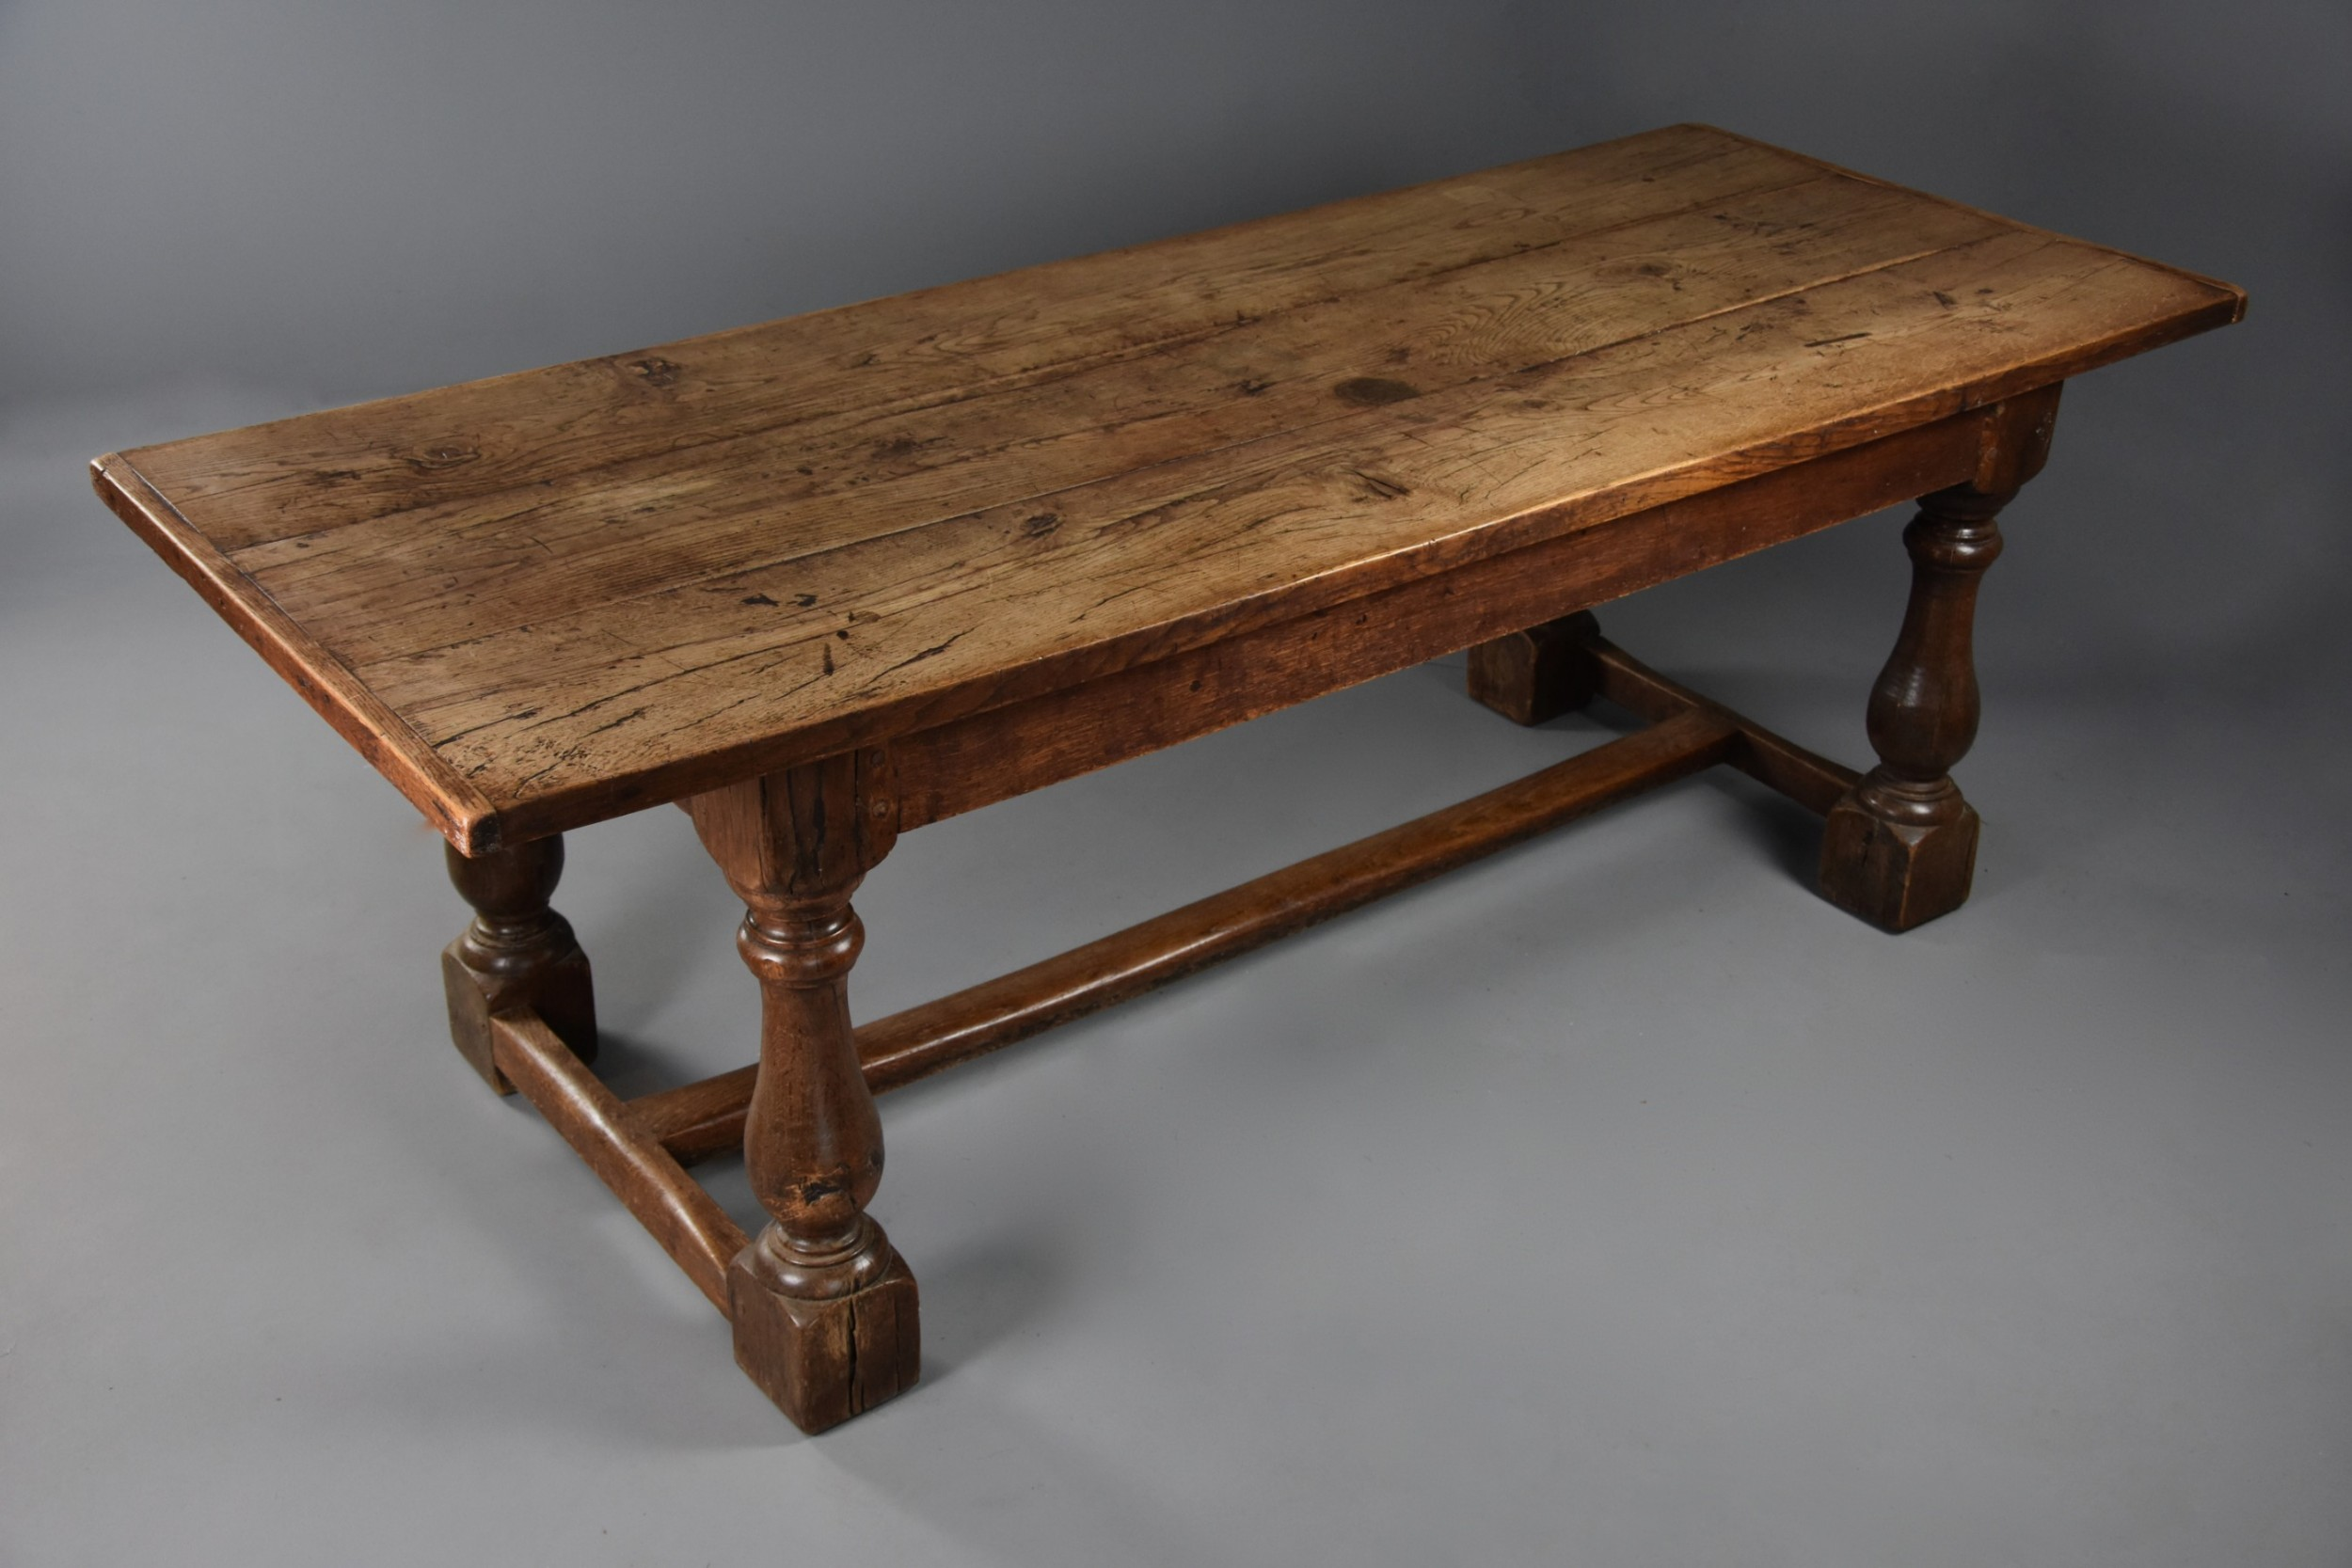 a late 19th century arts crafts oak refectory table with superb faded patina